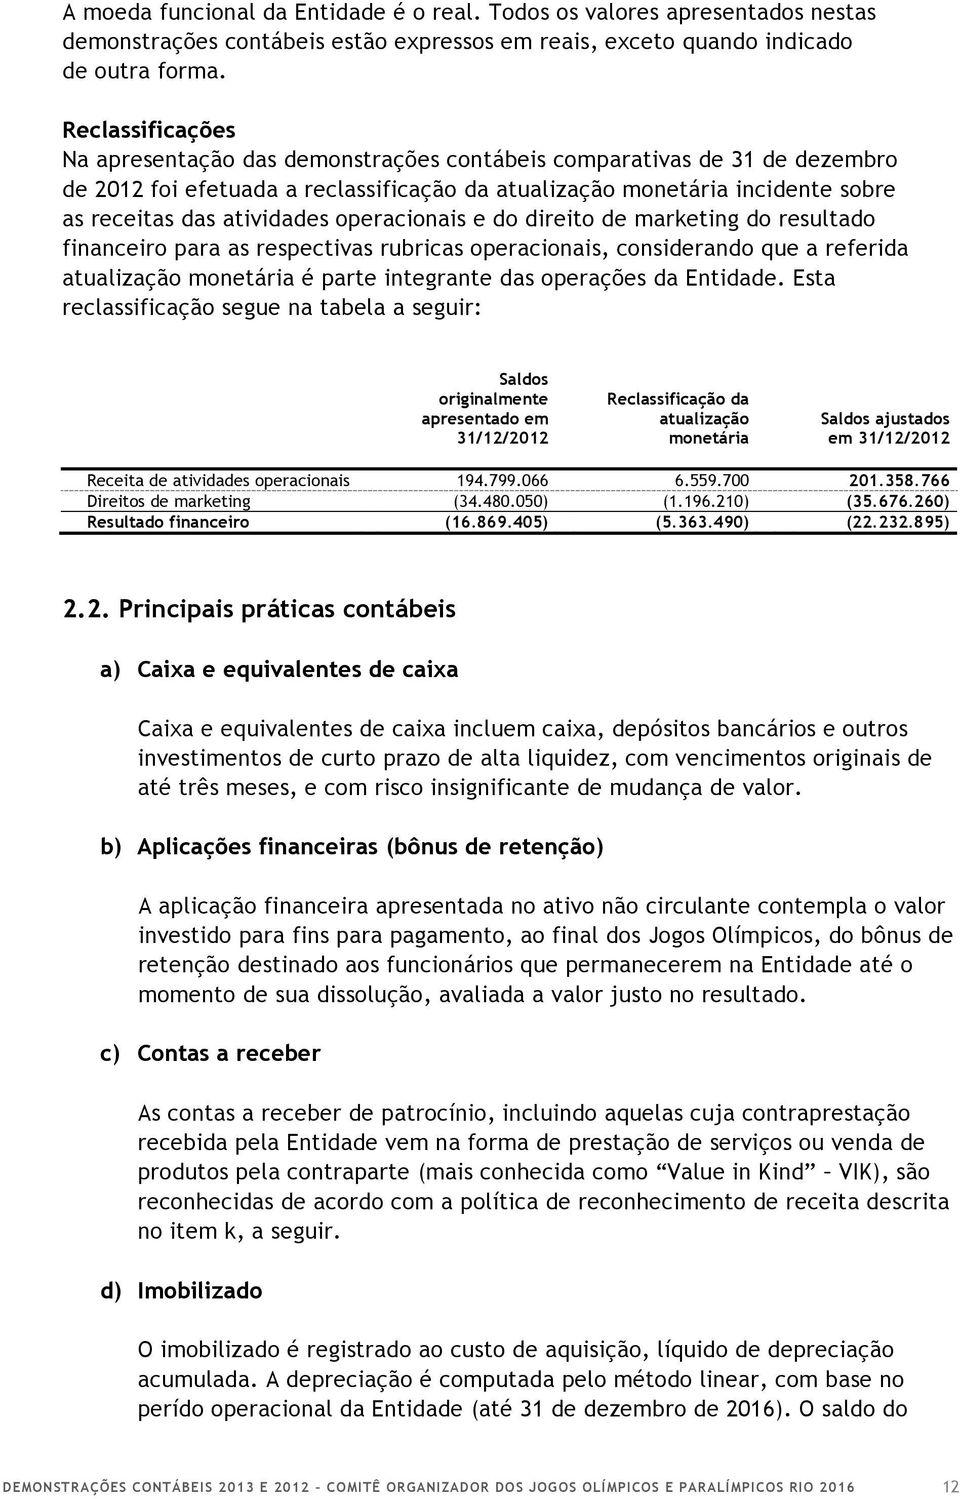 operacionais e do direito de marketing do resultado financeiro para as respectivas rubricas operacionais, considerando que a referida atualização monetária é parte integrante das operações da